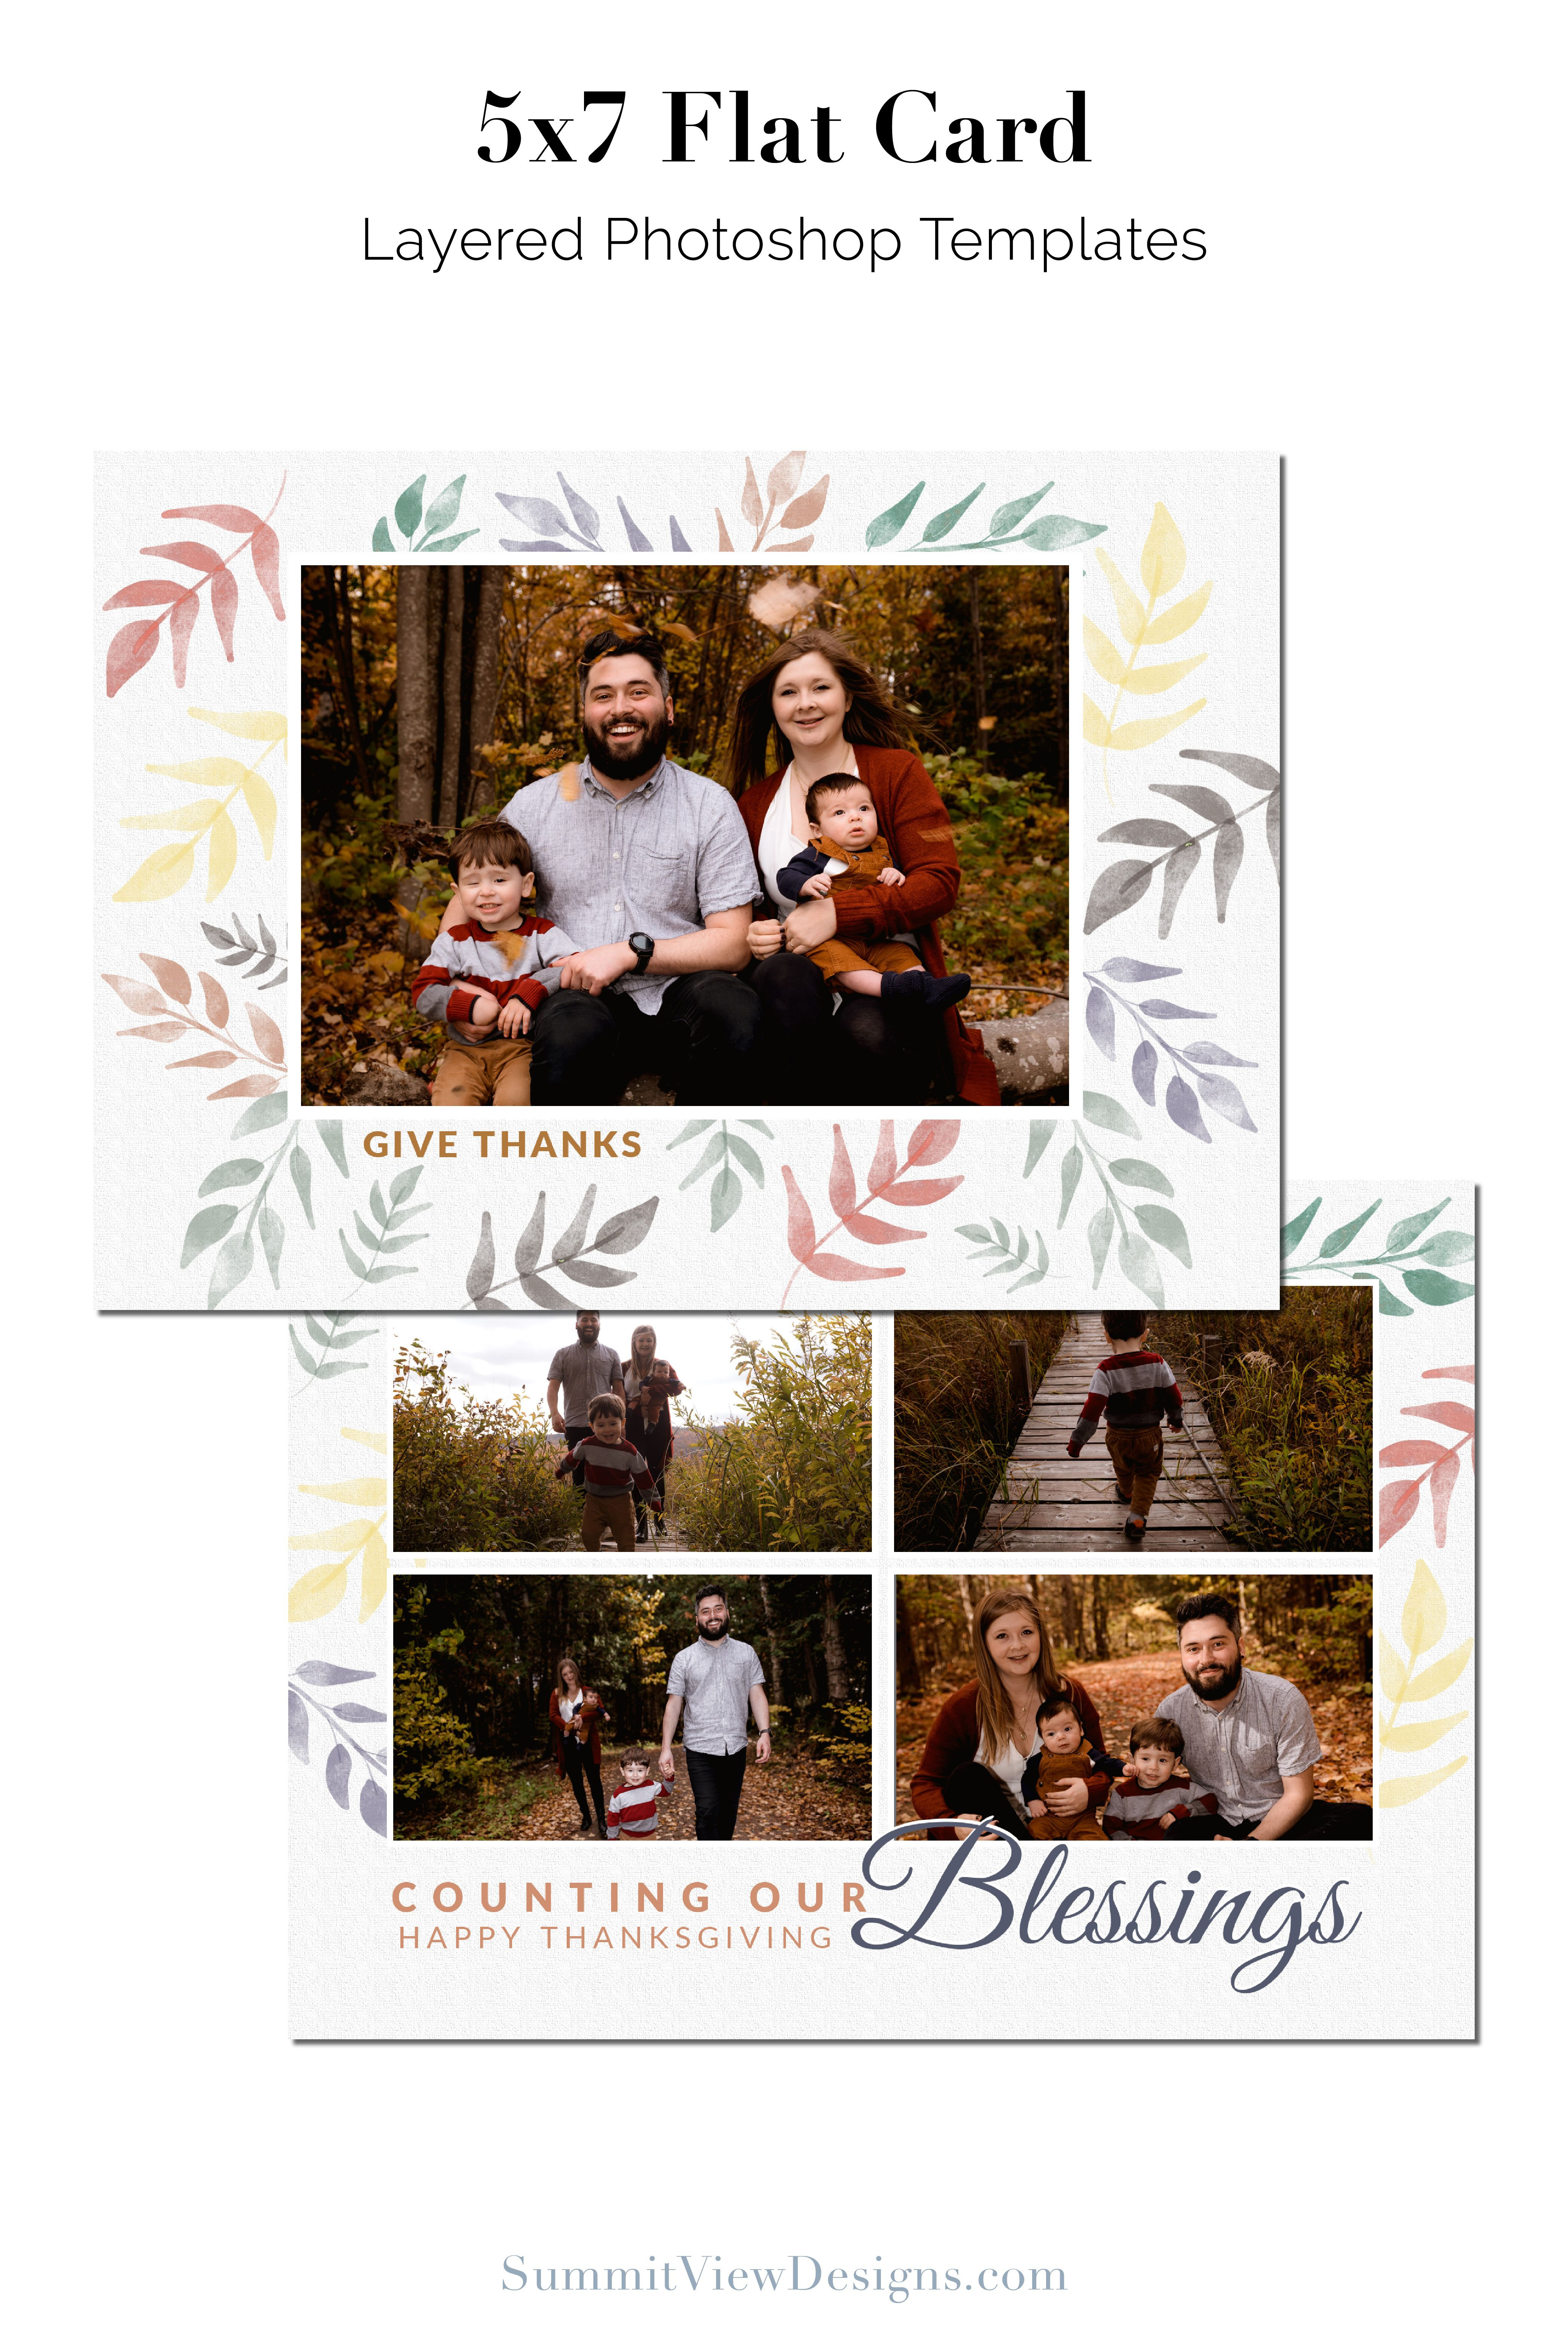 Fall Colors 5x7 Flat Card Etsy Photoshop Template Design Flat Cards Photography Templates